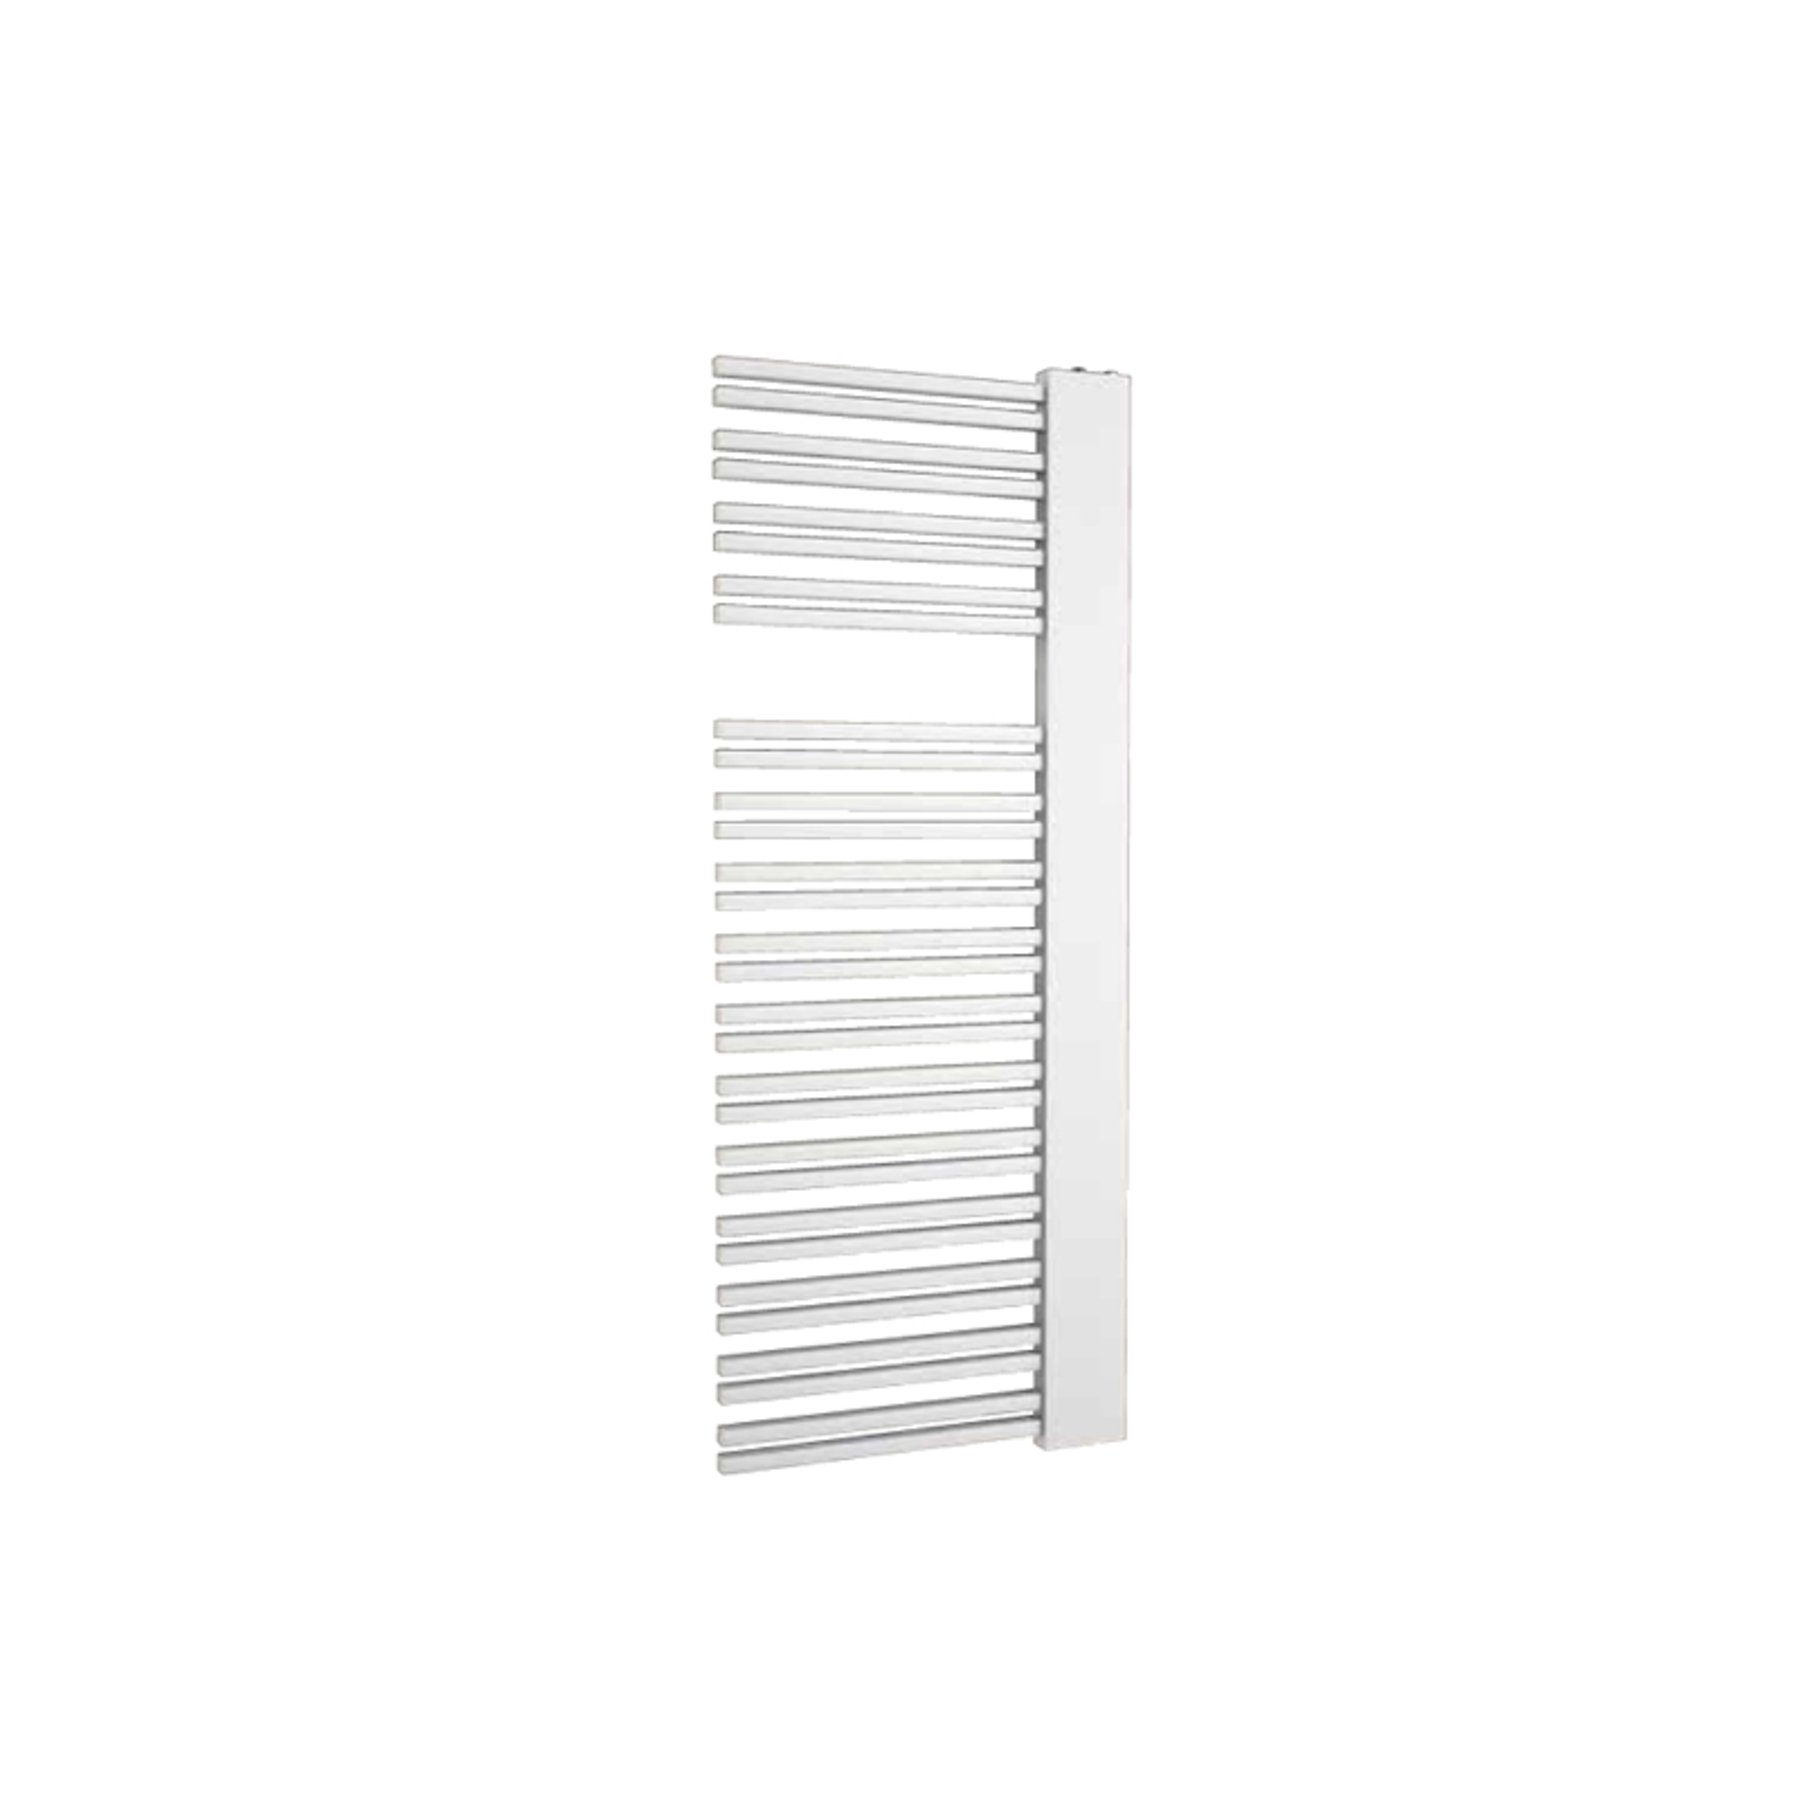 Plieger Frente Sinistra Designradiator horizontaal links 1210x600mm 690W black graphite